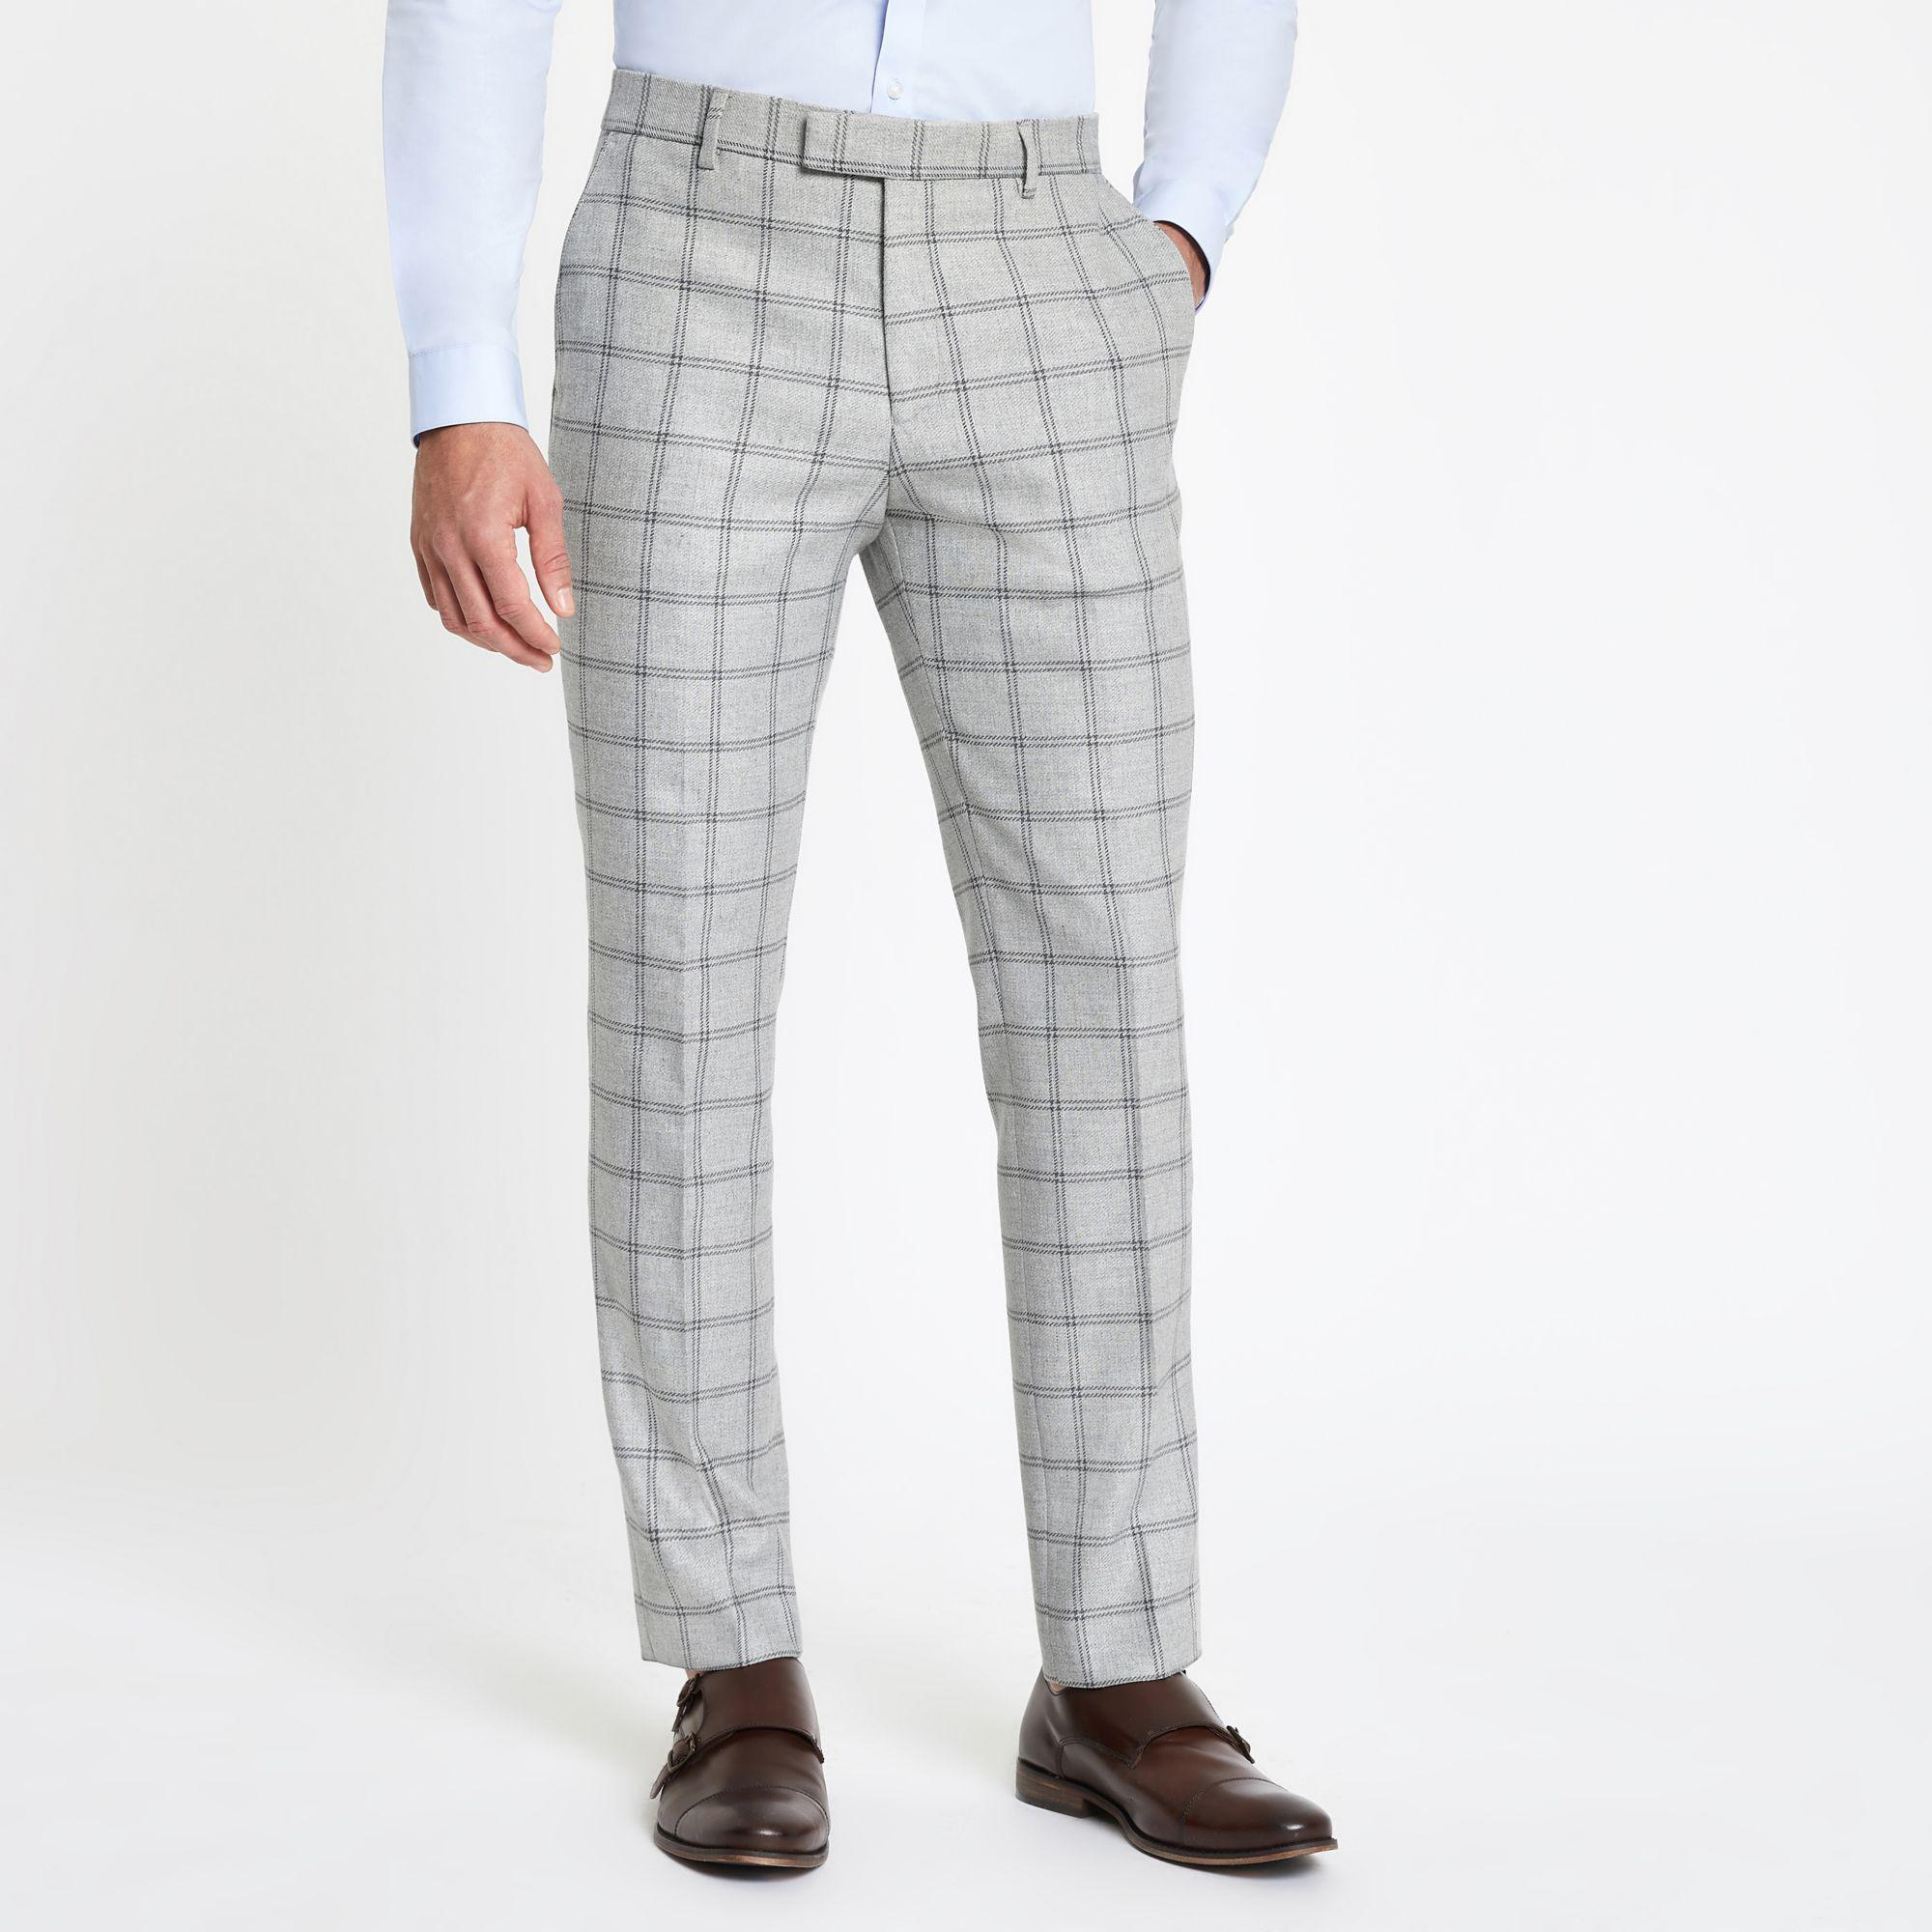 River Island Synthetic Grey Check Stretch Skinny Fit Suit Trousers in Grey for Men